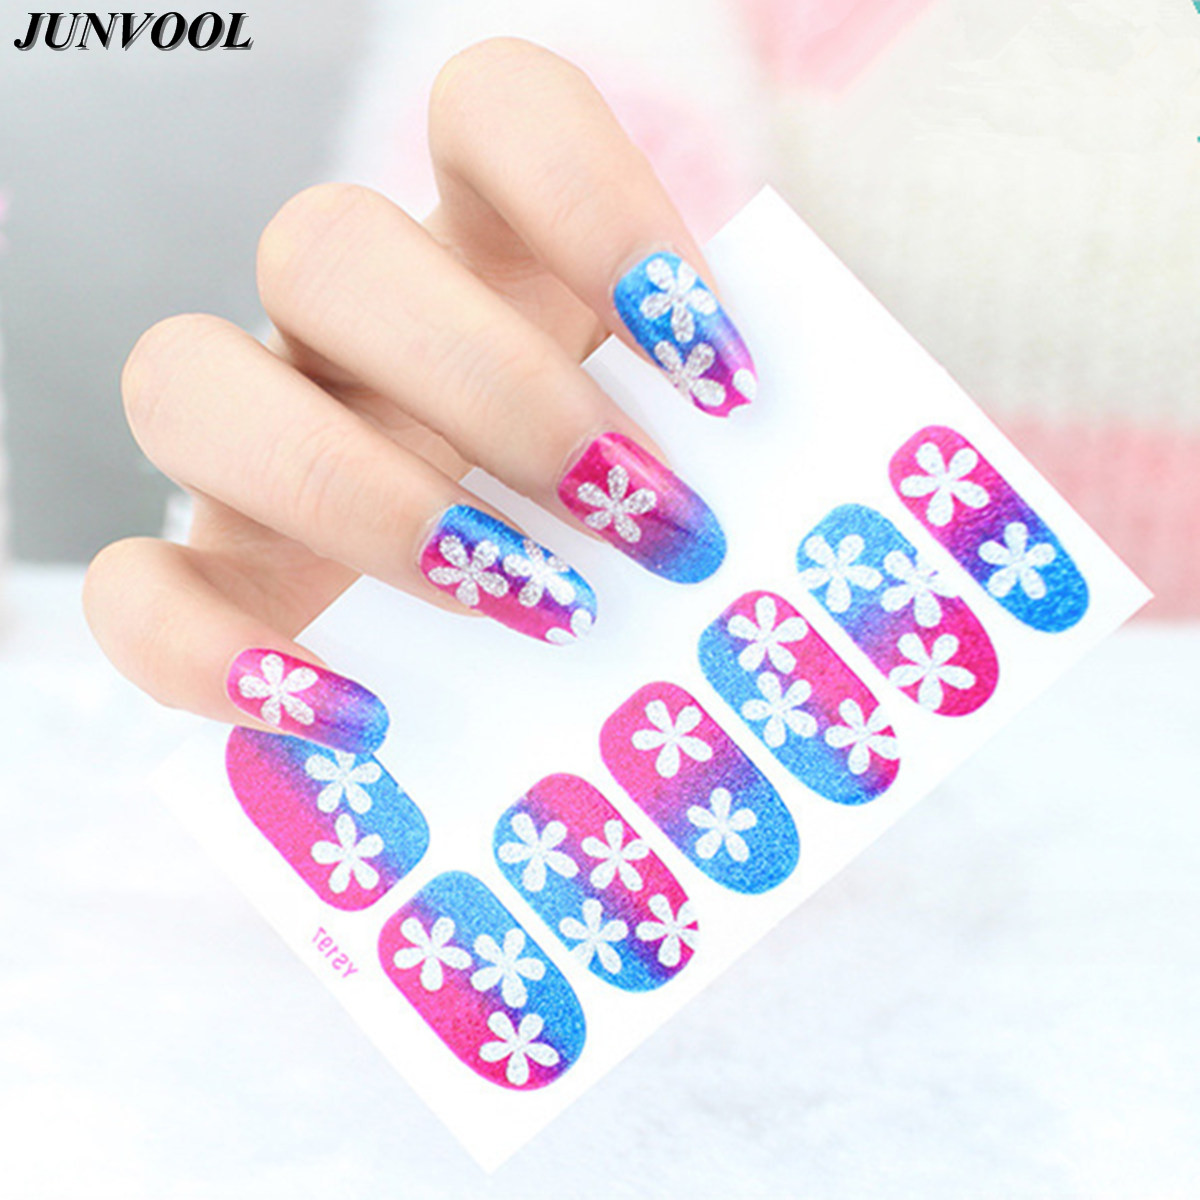 1pcs Nails Art Stickers Flower Style Snowflake Nail Wraps Sticker Watermark Fingernails Decals Wrap Foil Stickers for Nail(China (Mainland))